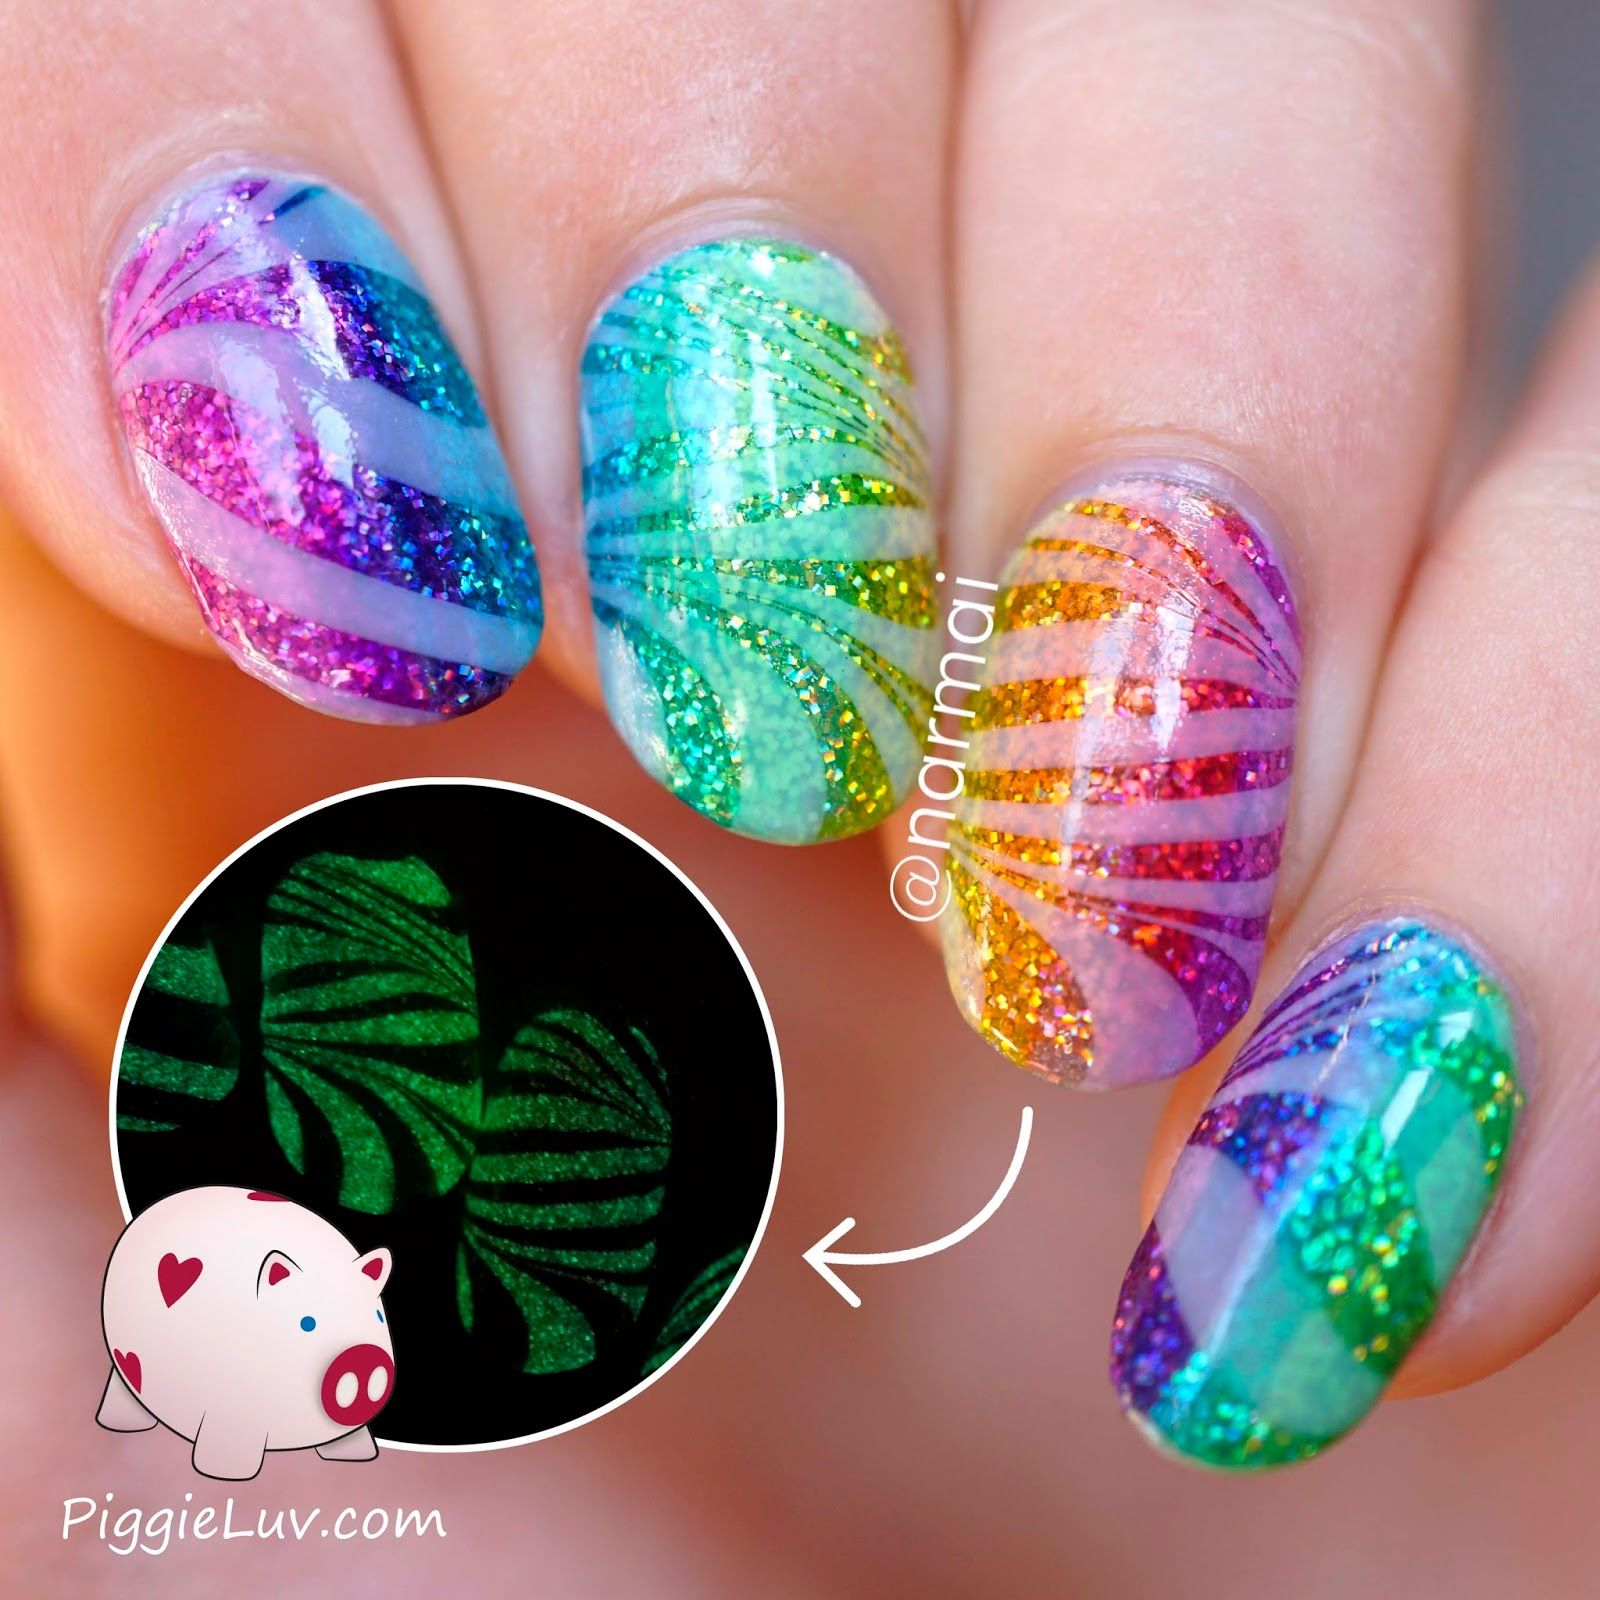 Nail art gallery | Color paints, OPI and Marble nails